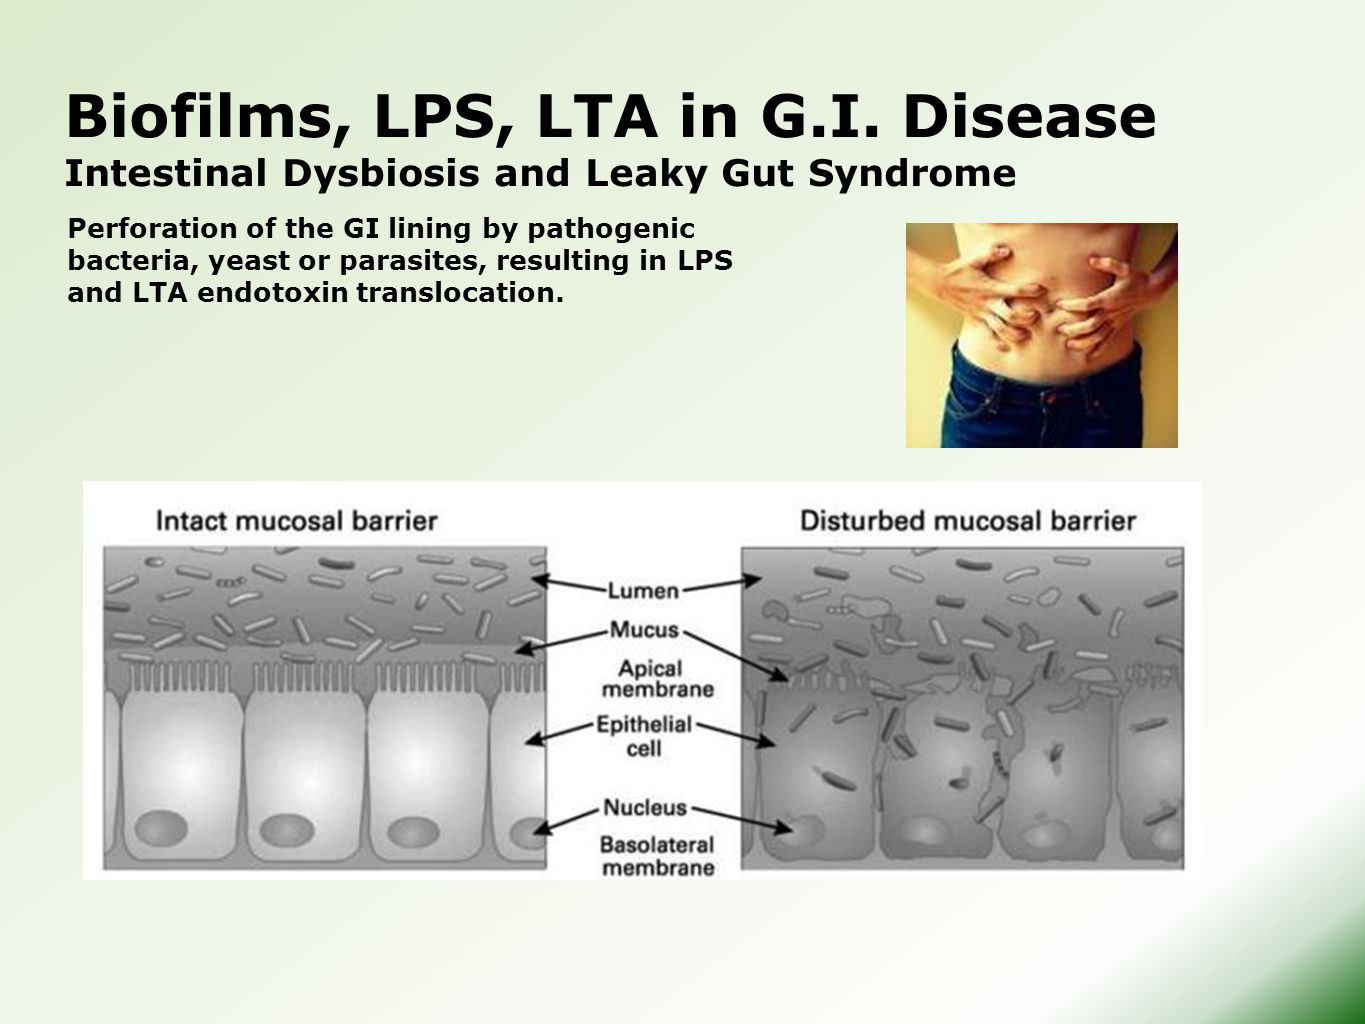 Biofilms, LPS, LTA in G.I. Disease Intestinal Dysbiosis and Leaky Gut Syndrome